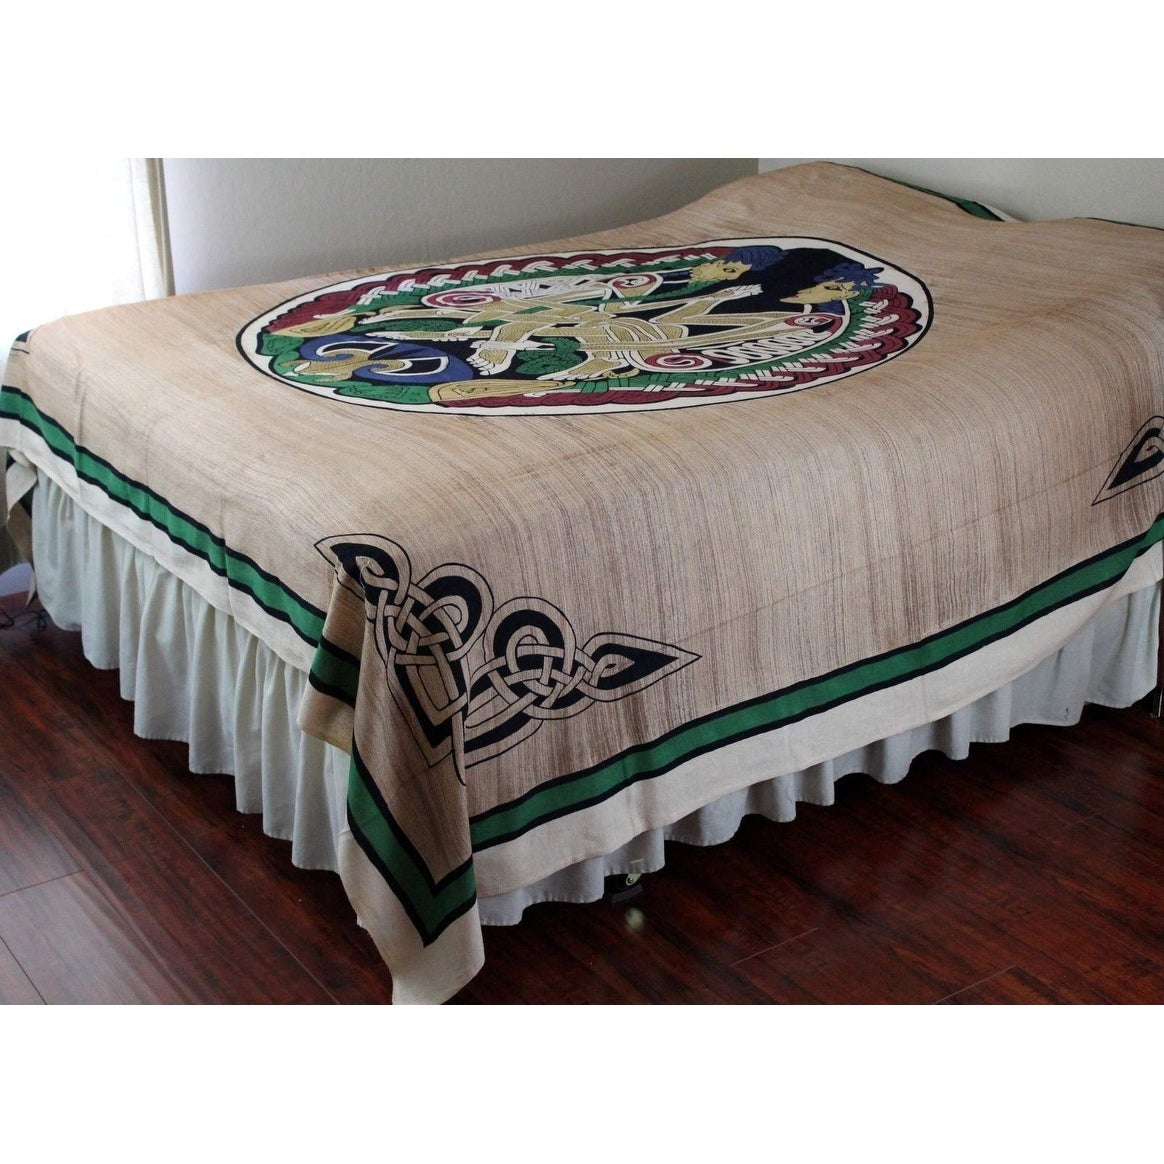 Unique Handmade 100% handloom Cotton Celtic Lovers Tapestry Tablecloth Bedspread Tan Full 88 x 106 inches - Thumbnail 0